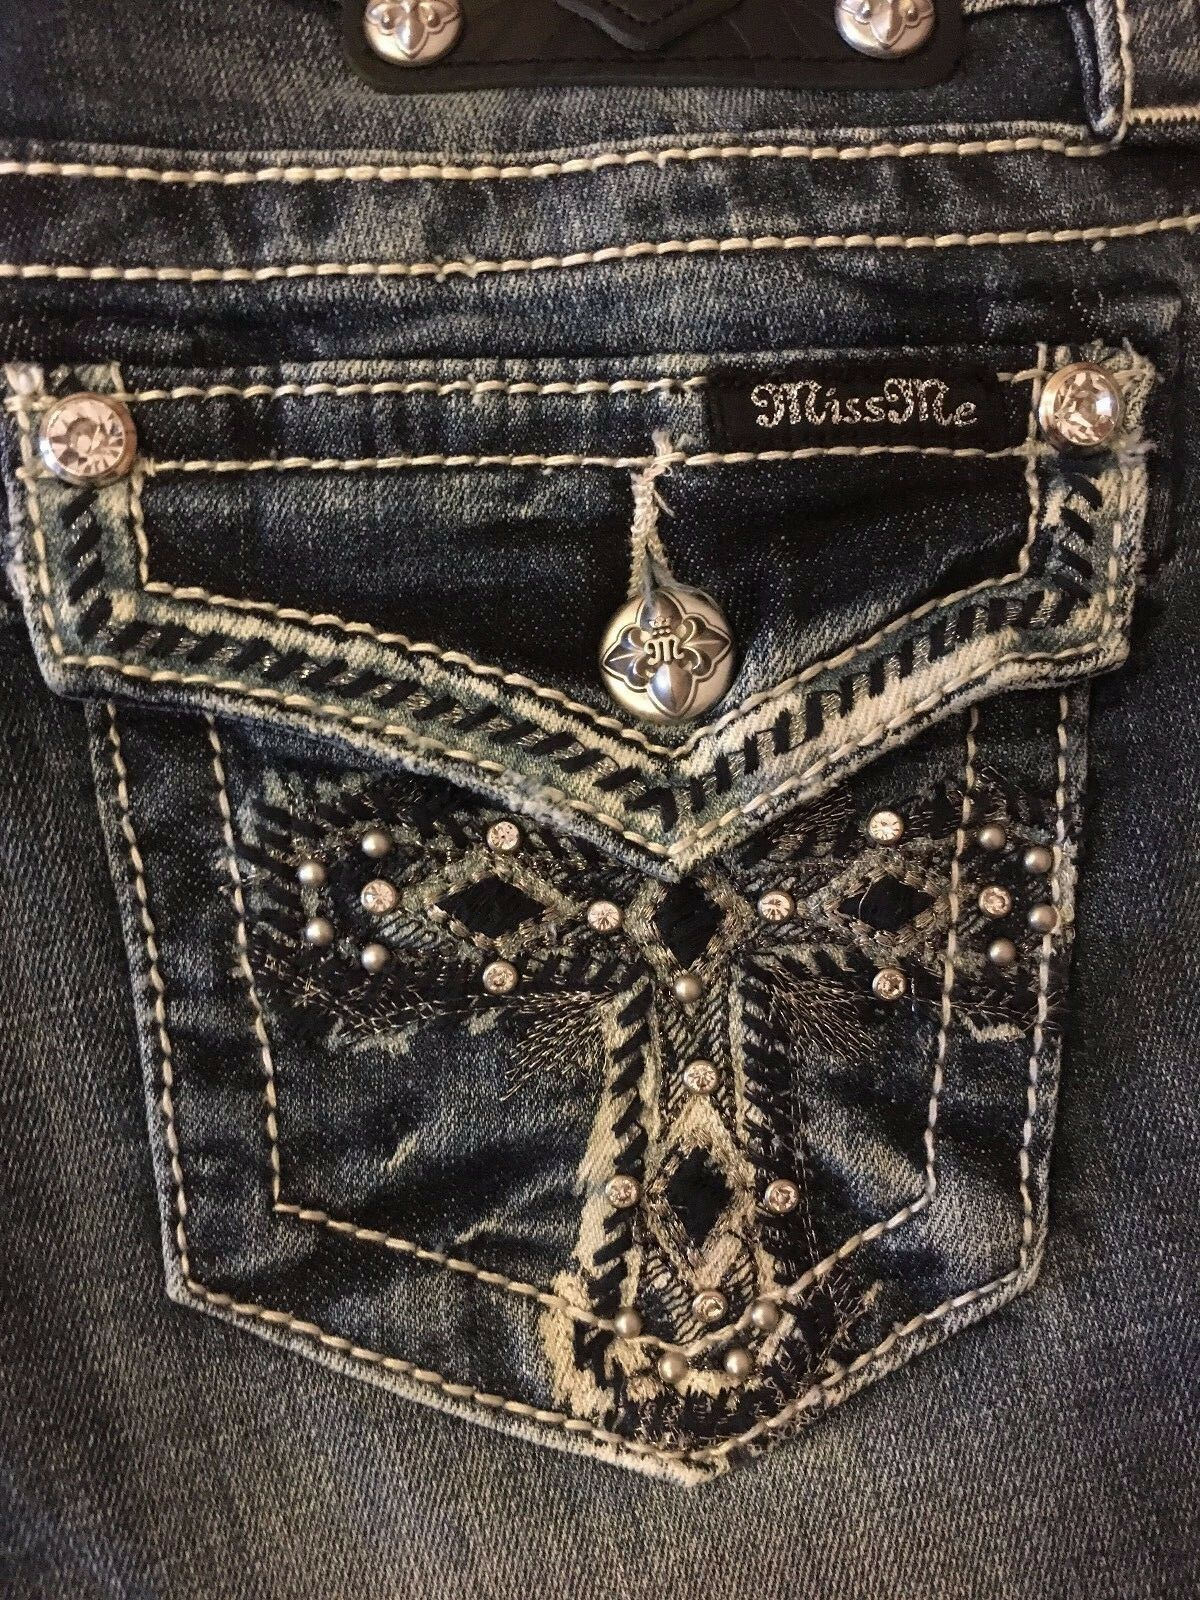 Miss Me womens jeans JP5100B9  Bless your Heart  boot cut